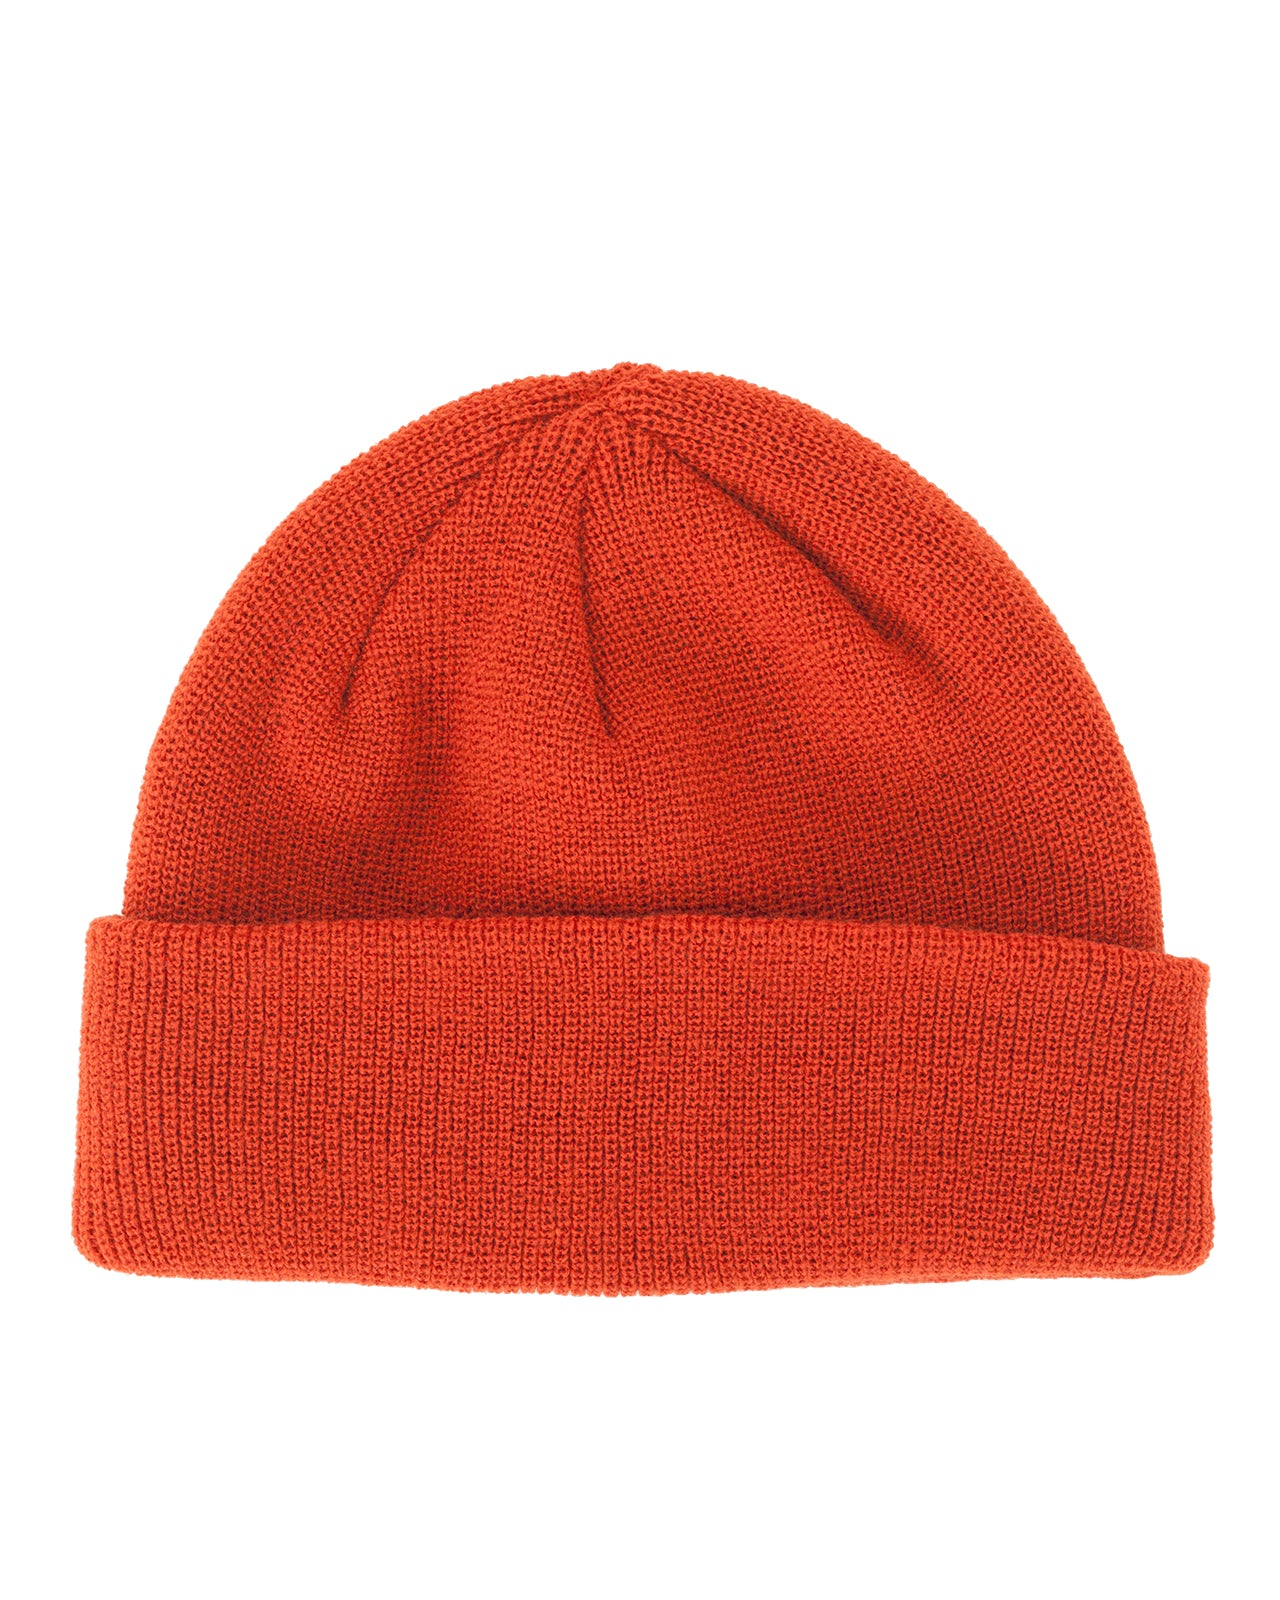 Weirdo Knit Cap, Ringing Tiger, Orange